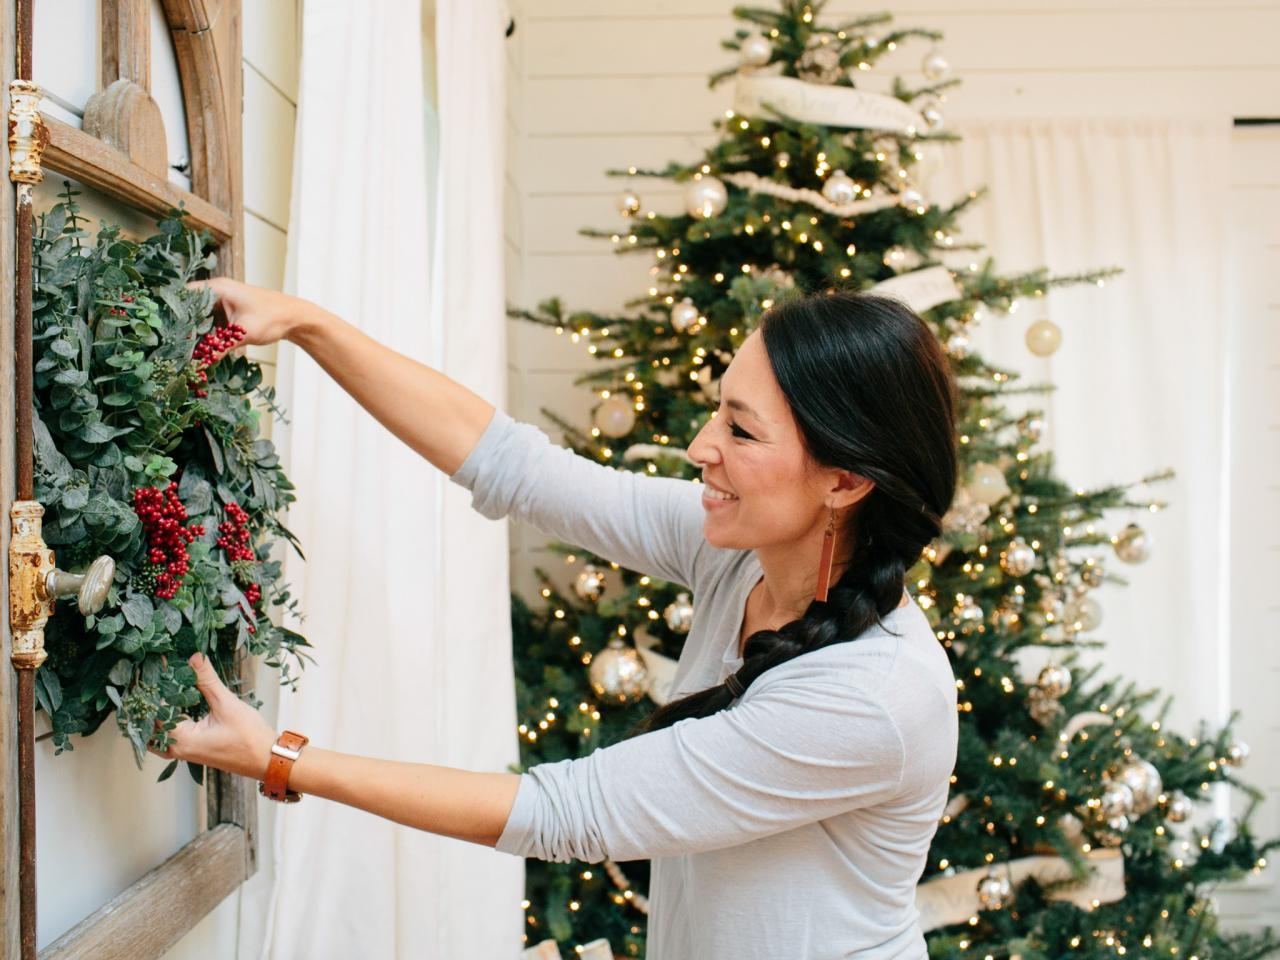 Joanna Gaines Farmhouse Christmas Decor Is Cheery and Charming